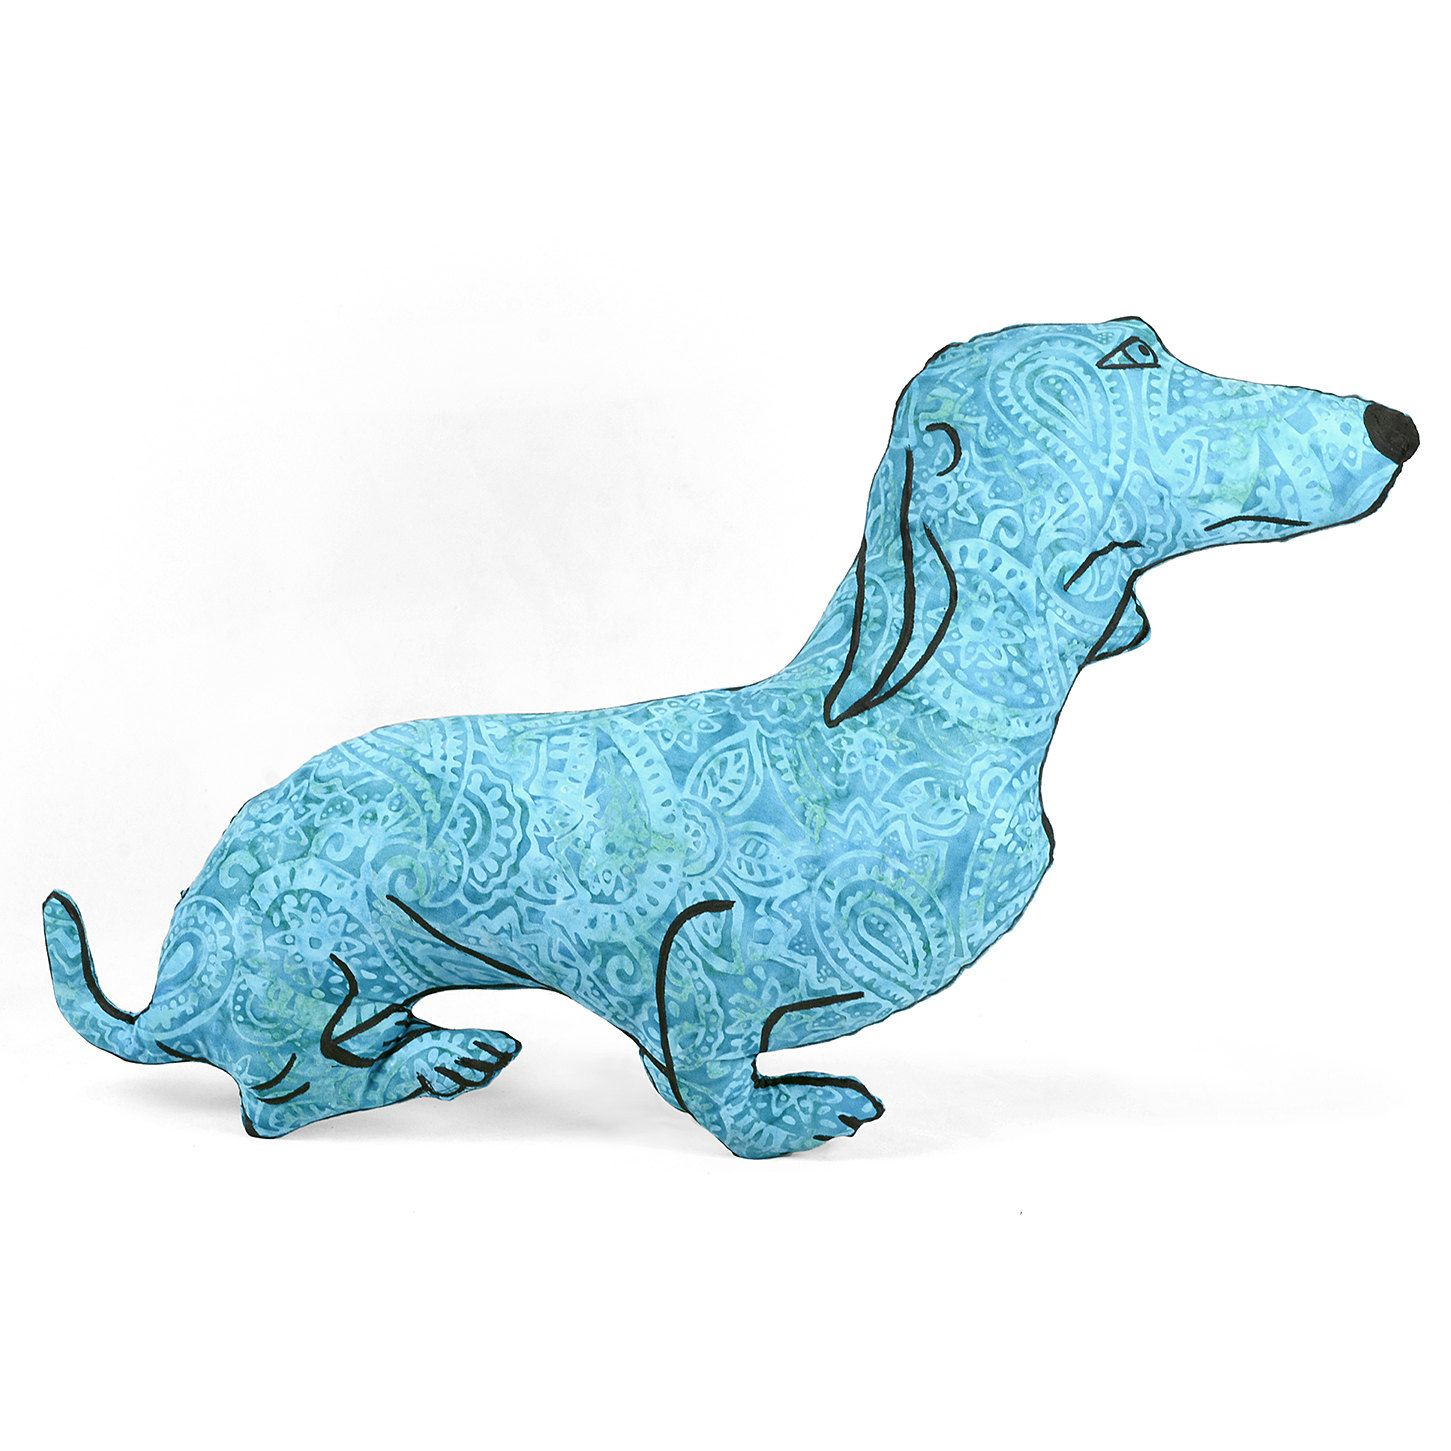 decorative pillow, dog pillow, animal pillow, dachshund dog shaped big pillow chair sized doxie shaped pillow by pattihaskins on Etsy